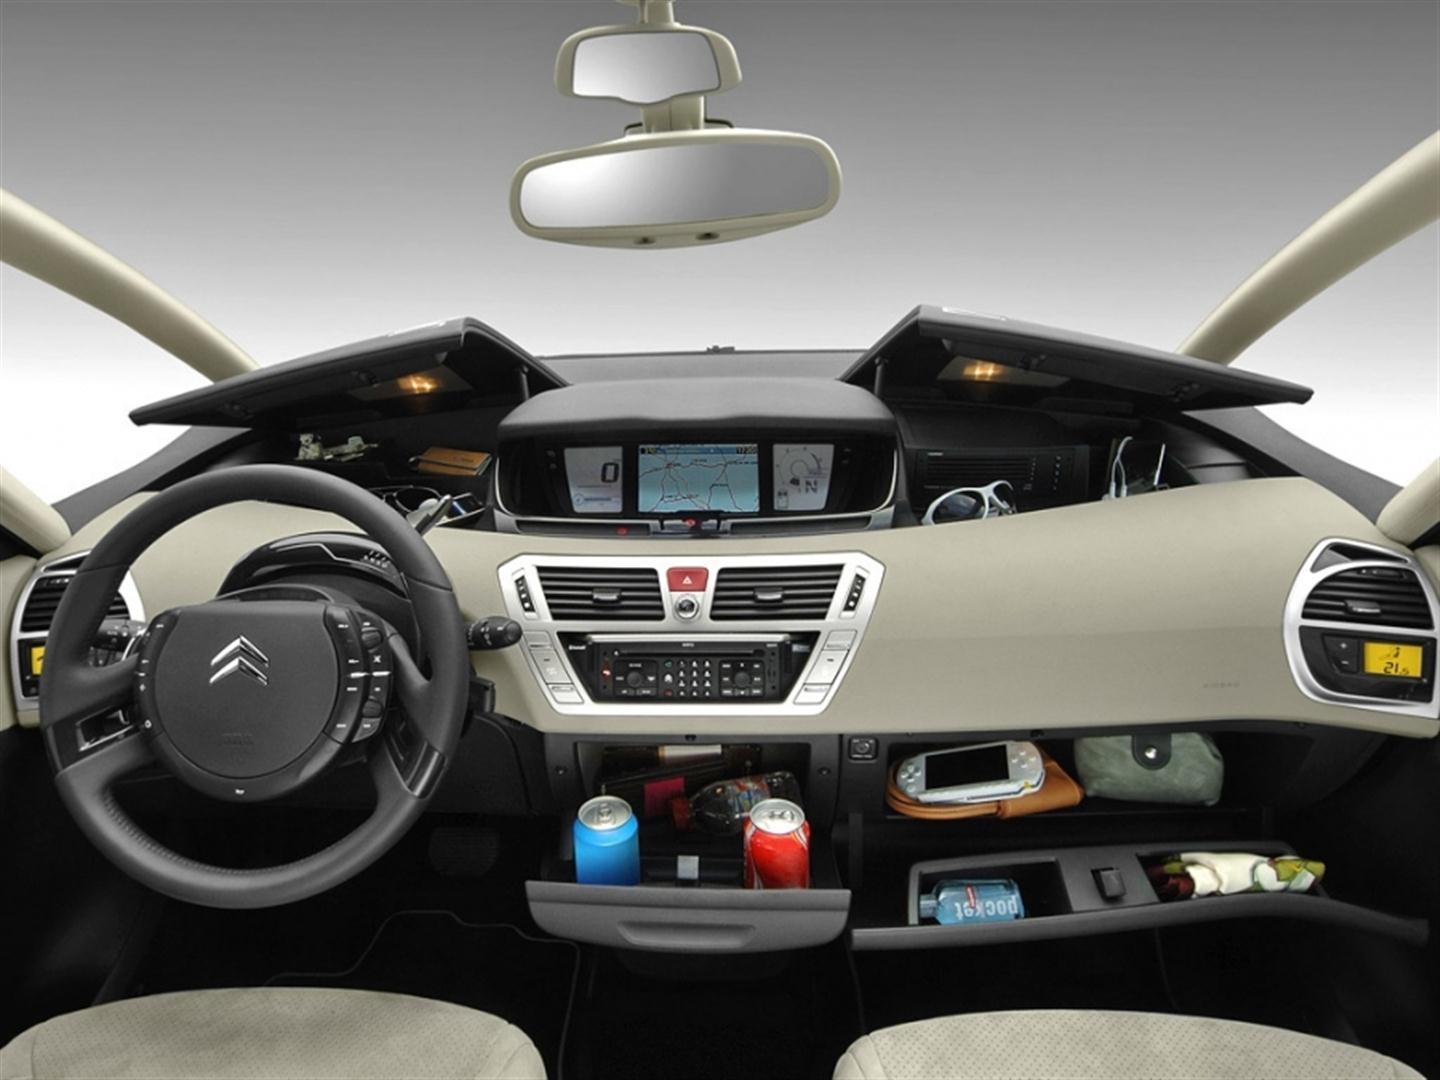 2018 citroen c4 cactus interior updates new suv price. Black Bedroom Furniture Sets. Home Design Ideas